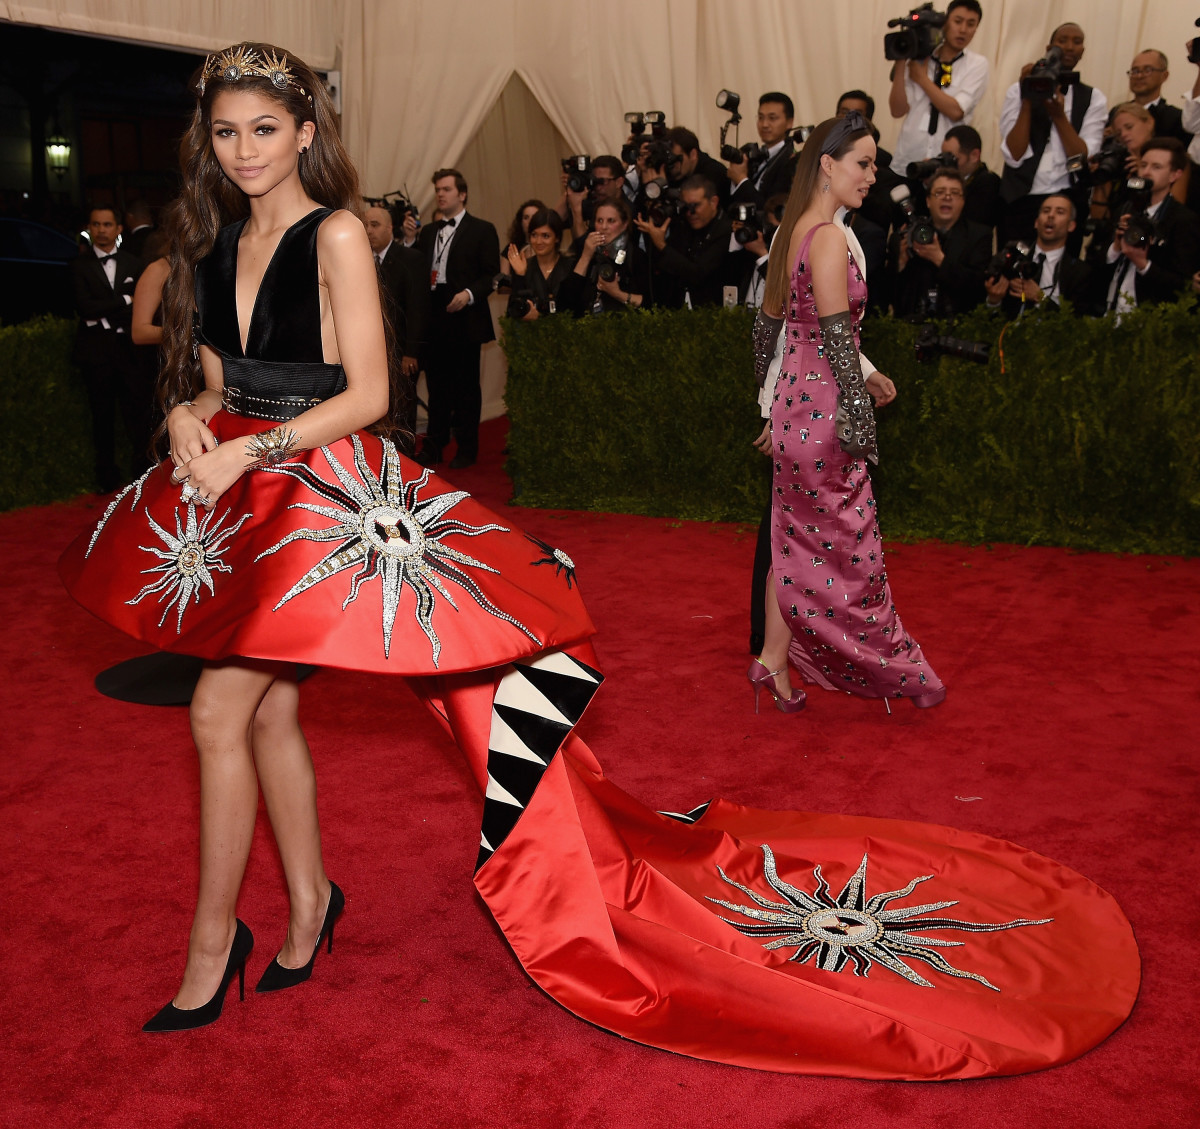 Zendaya at the Met Gala in May, wearing shoes from her upcoming collection. Photo: Dimitrios Kambouris/Getty Images